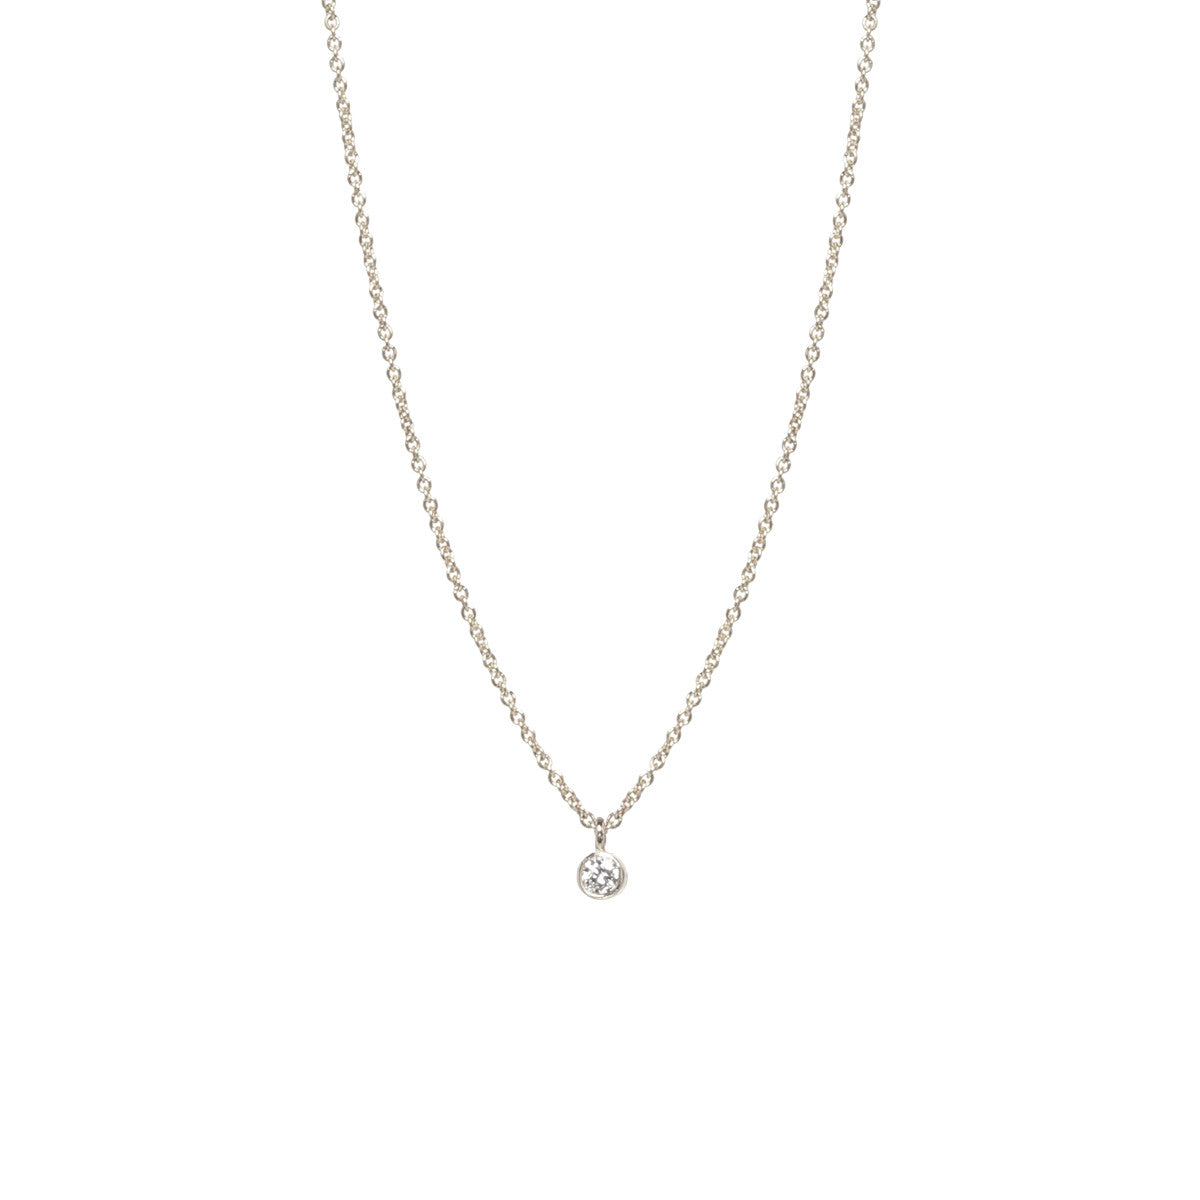 Zo chicco 14k single diamond pendant necklace 14k single diamond pendant necklace aloadofball Choice Image